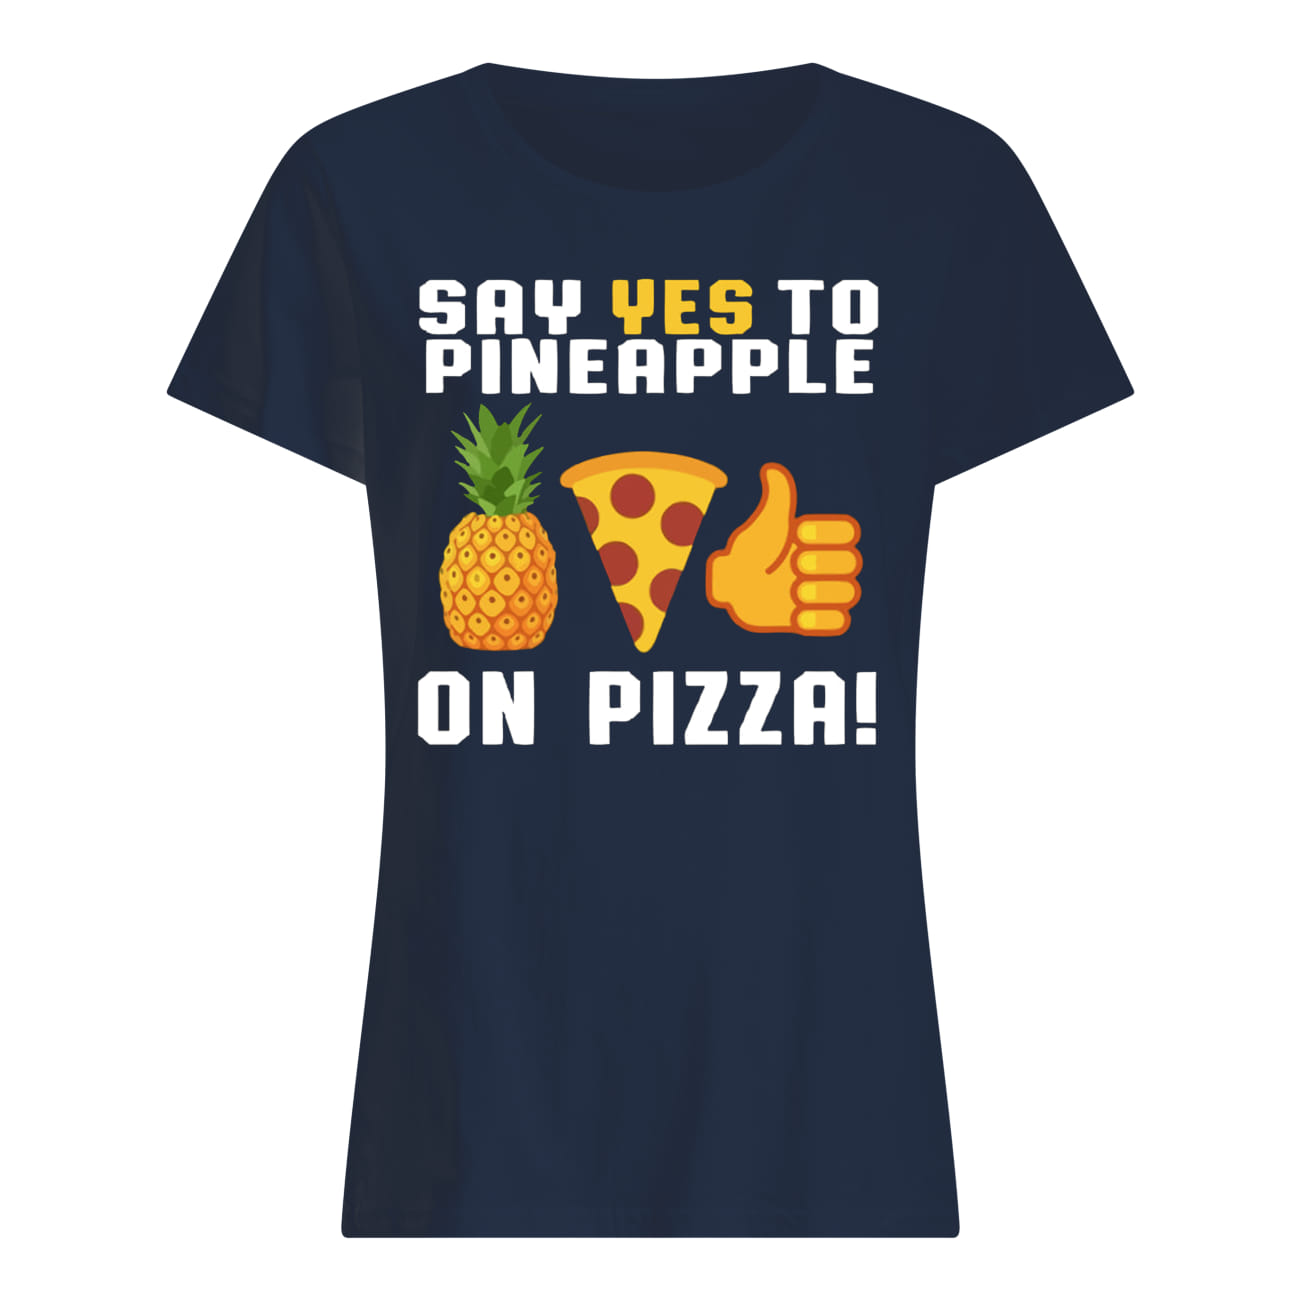 Say yes to pineapple on pizza lady shirt